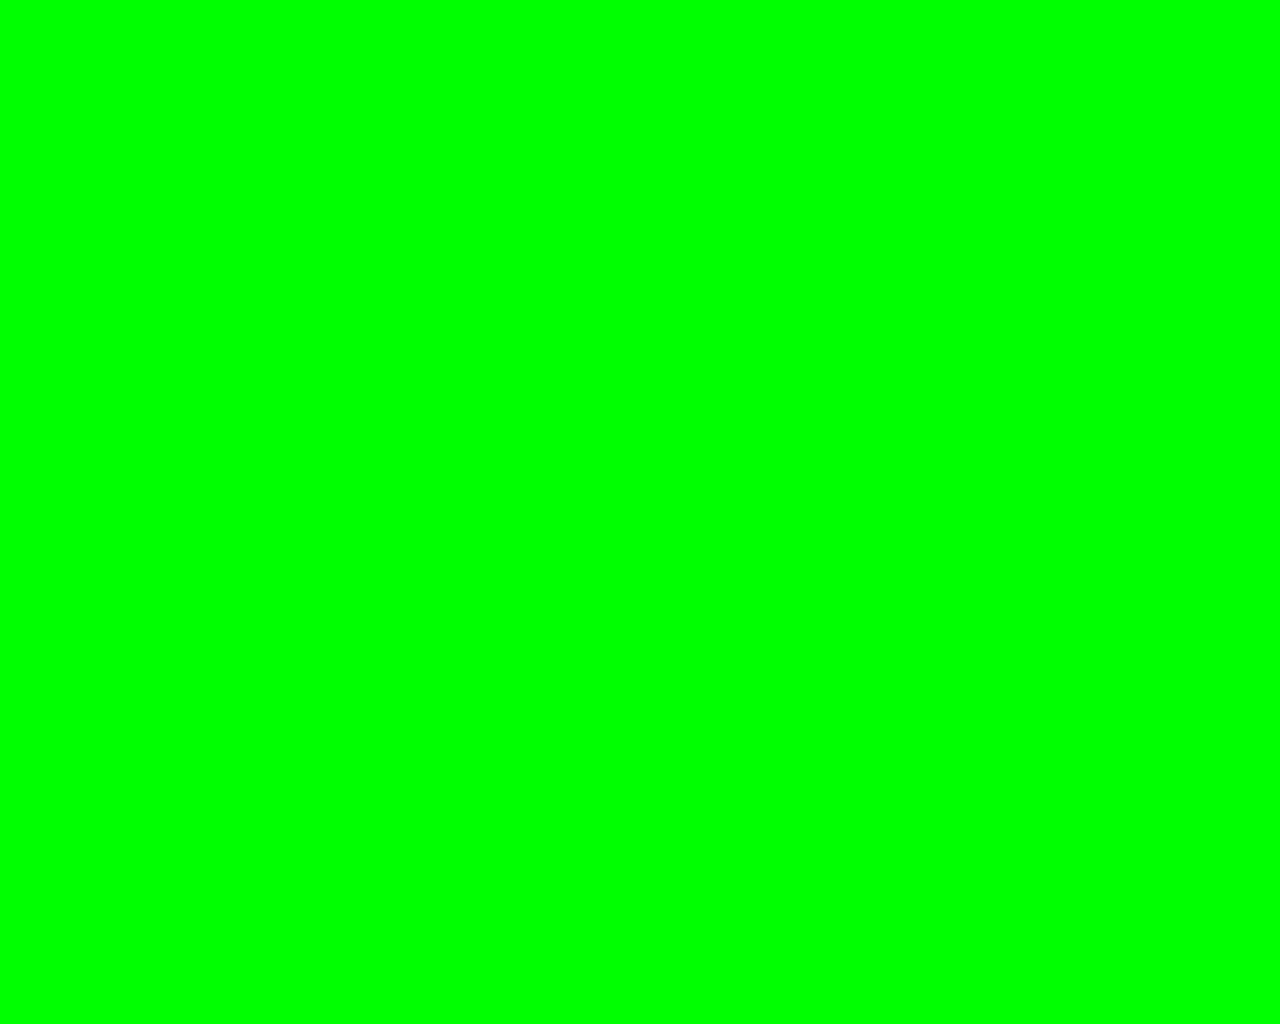 1280x1024 Lime Web Green Solid Color Background